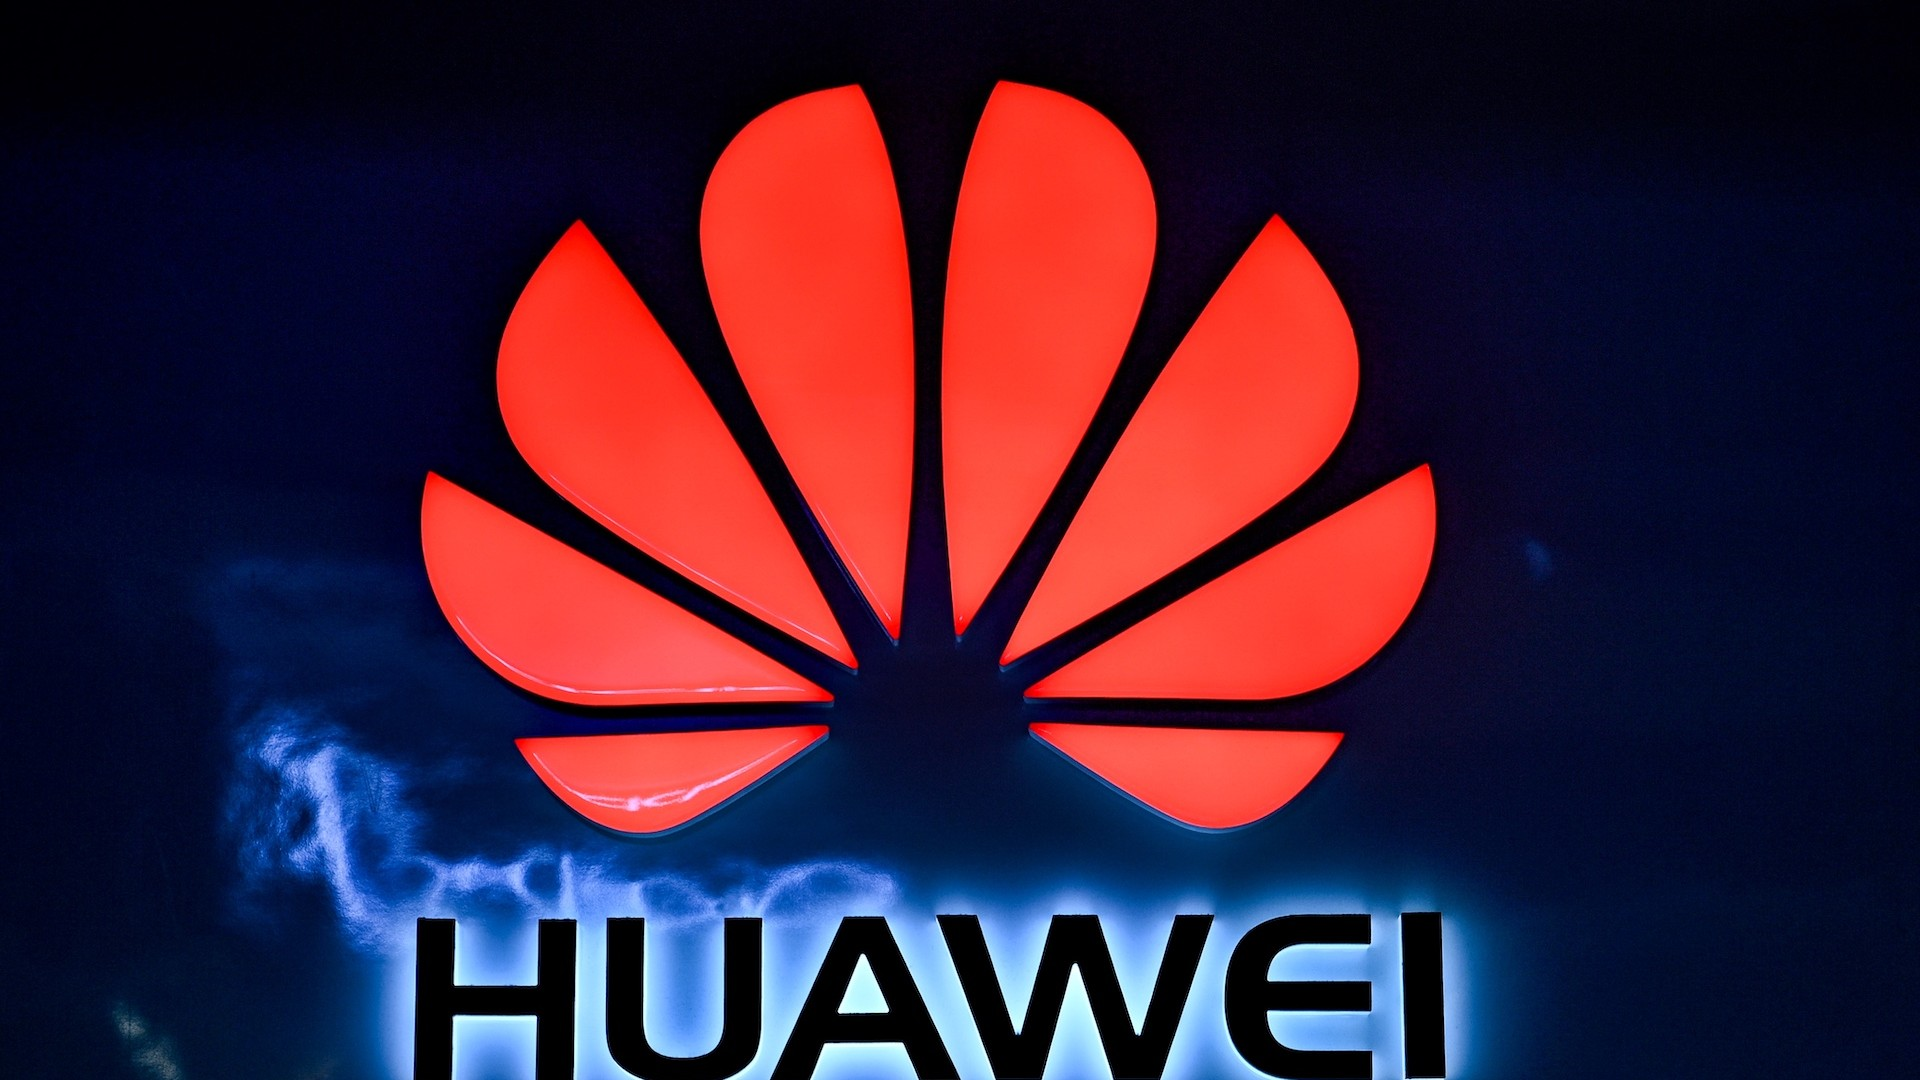 The UK will defy Trump and embrace Chinese technology giant Huawei, report says